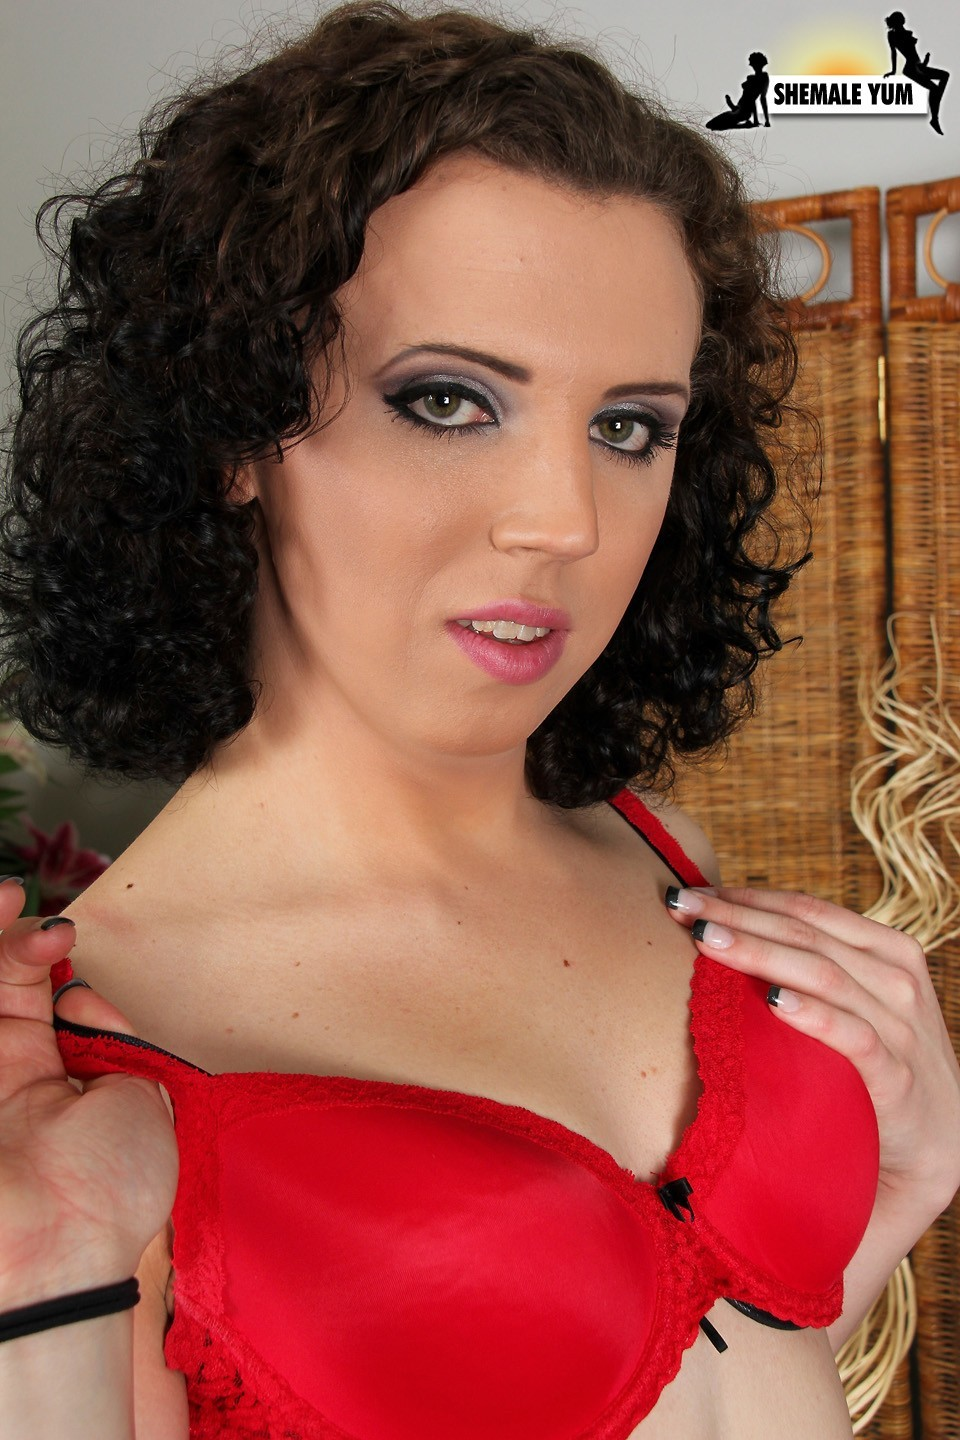 shemale alexis lulu looking racy in red bra and black boots